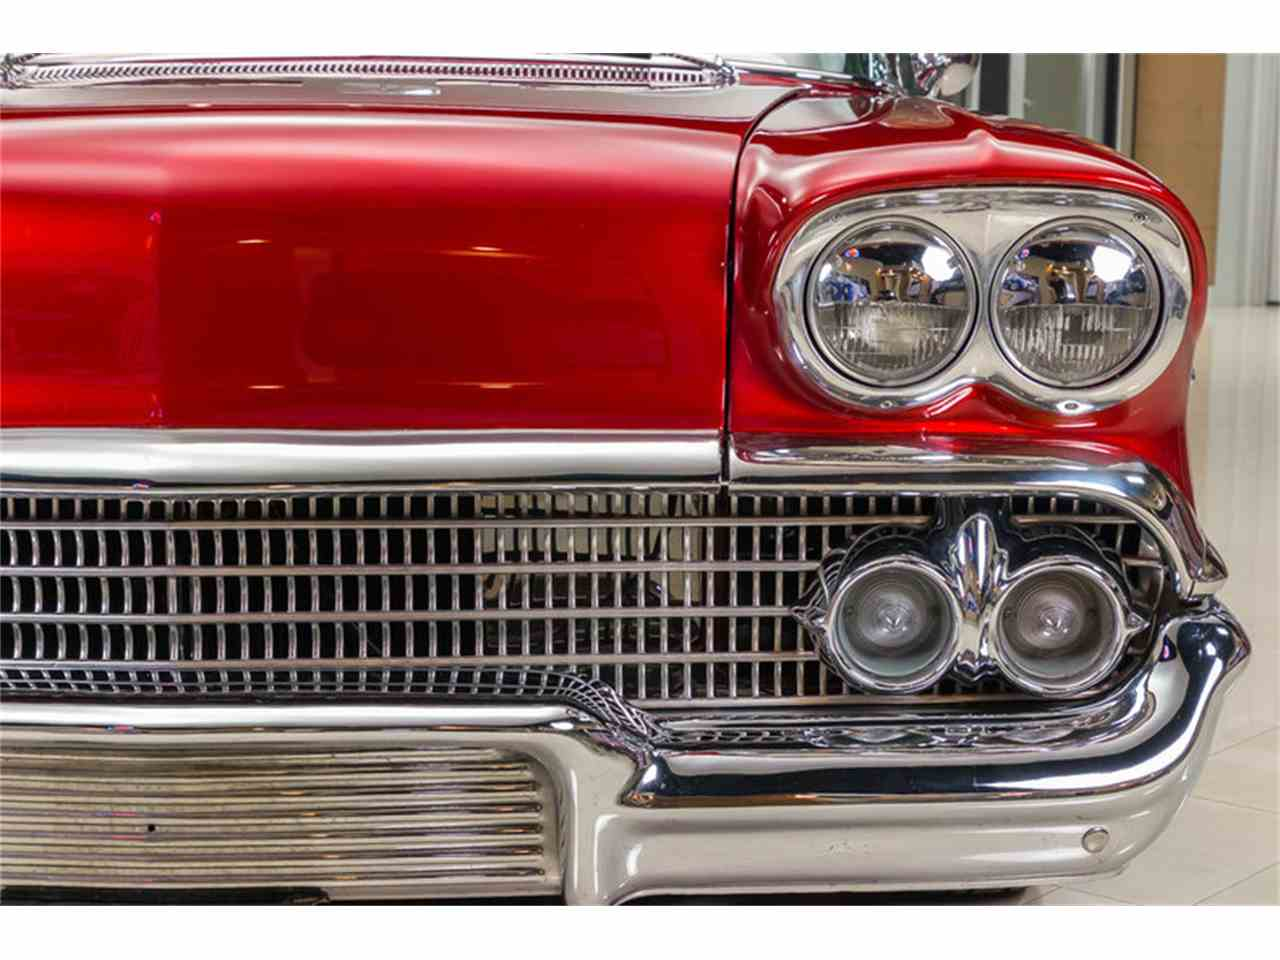 Large Picture of Classic 1958 Chevrolet Impala - $64,900.00 - K273